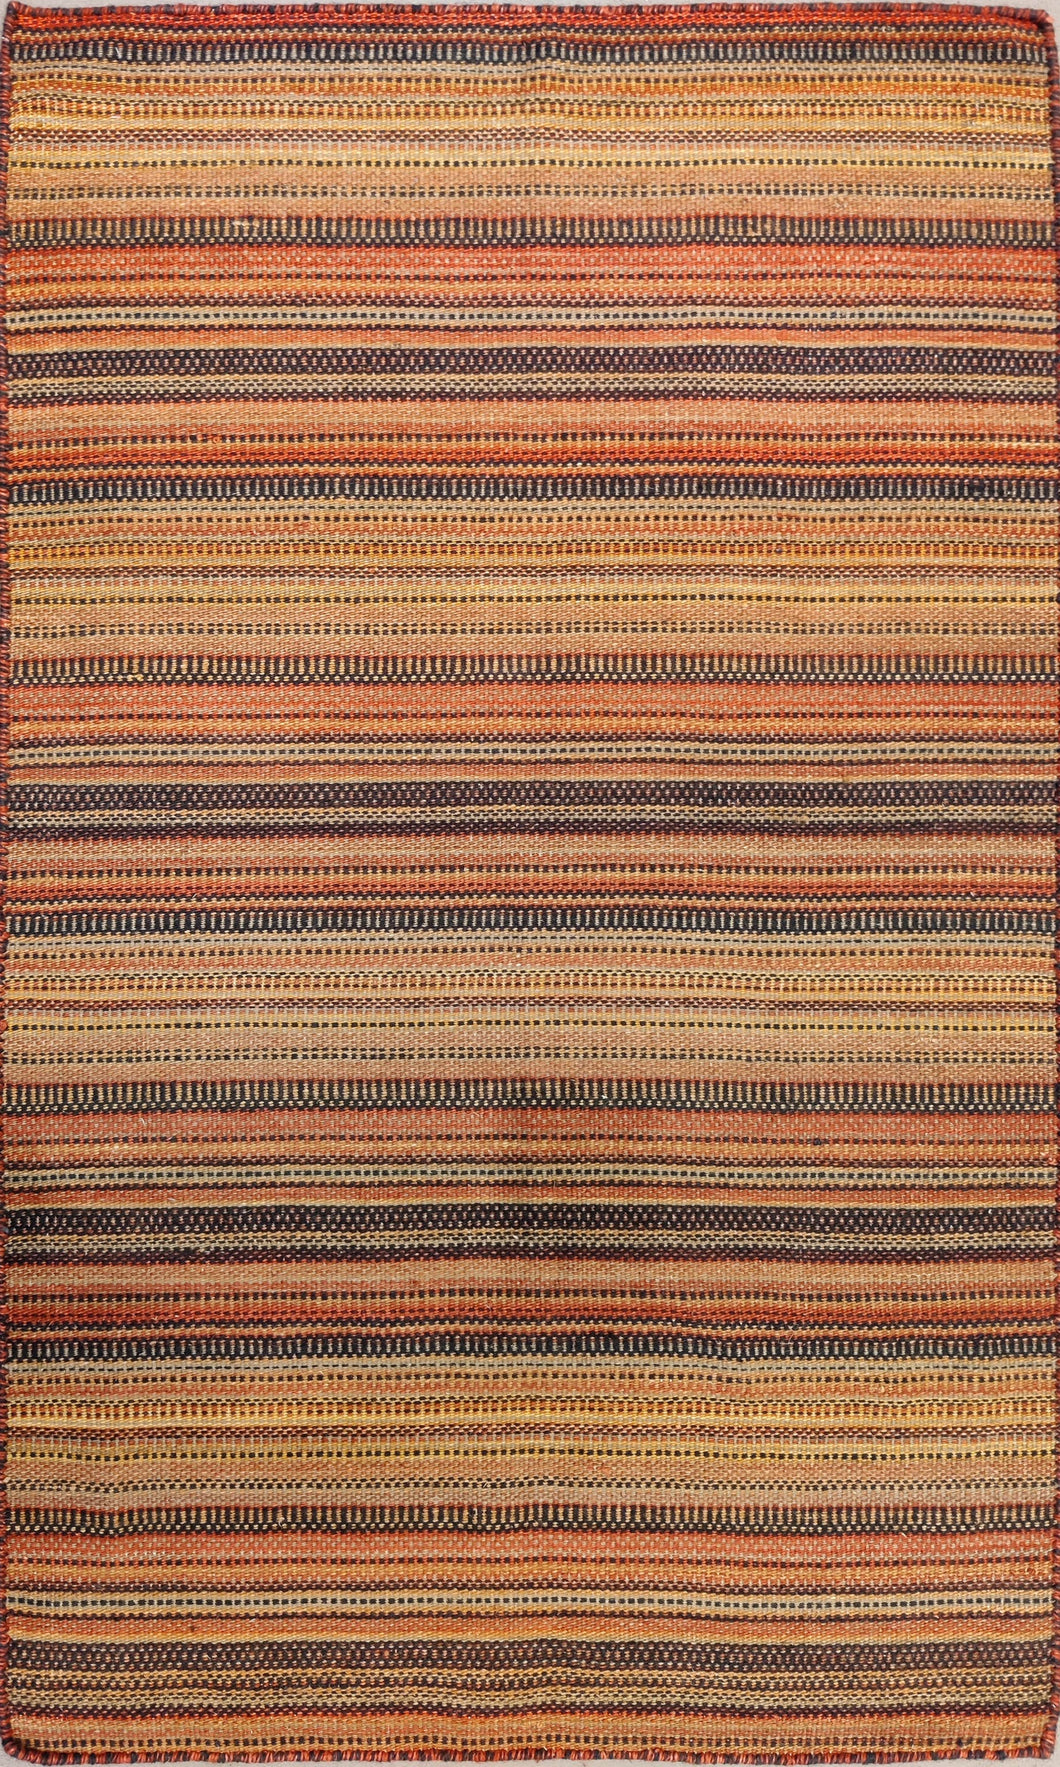 The Rugs Cafe Dhurries Colorful Stripe Hooked Indoor Outdoor Rug [Handmade]